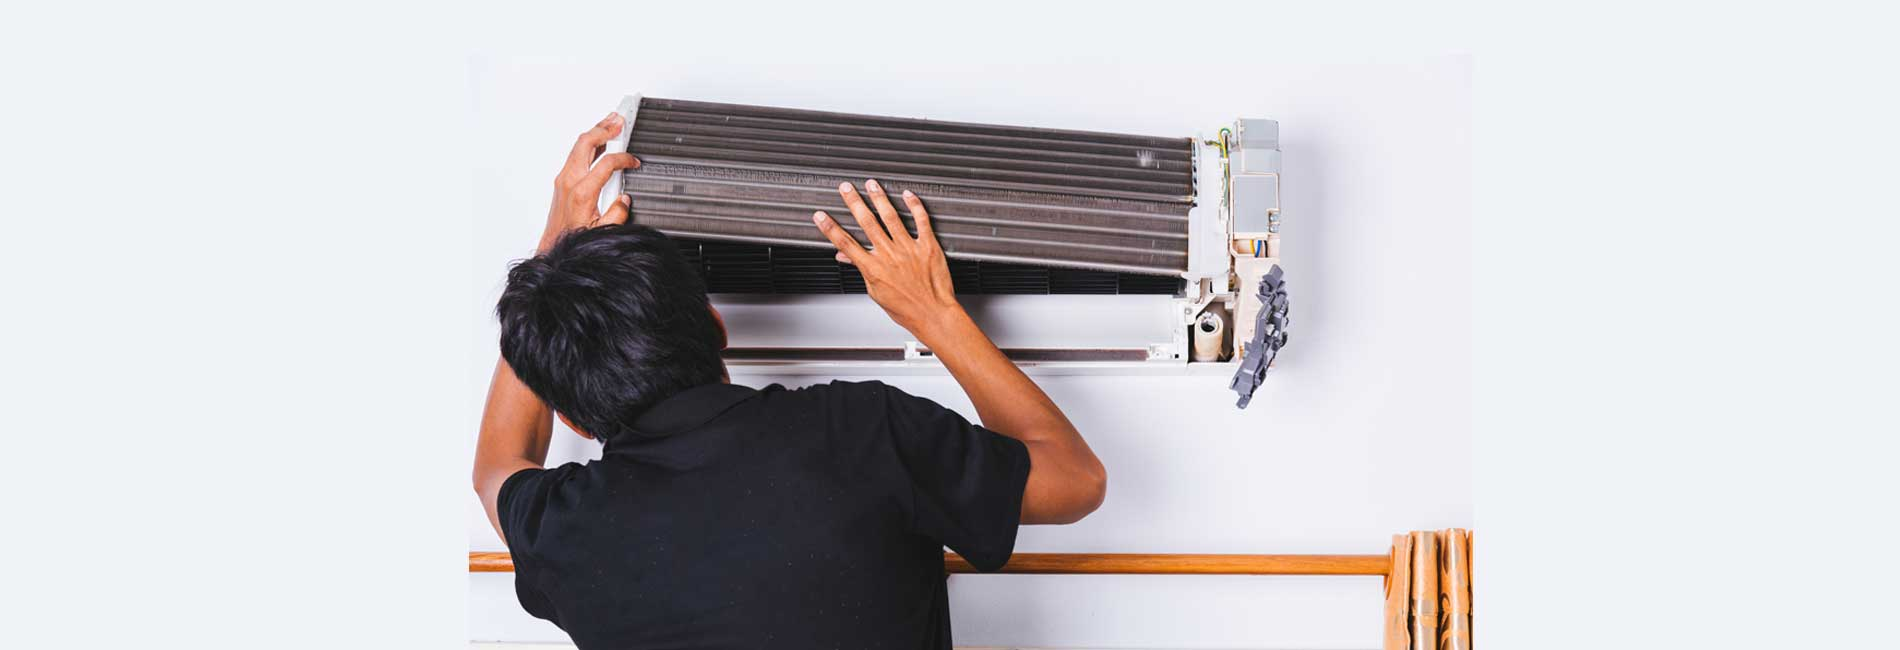 AC Uninstallation in Mannady